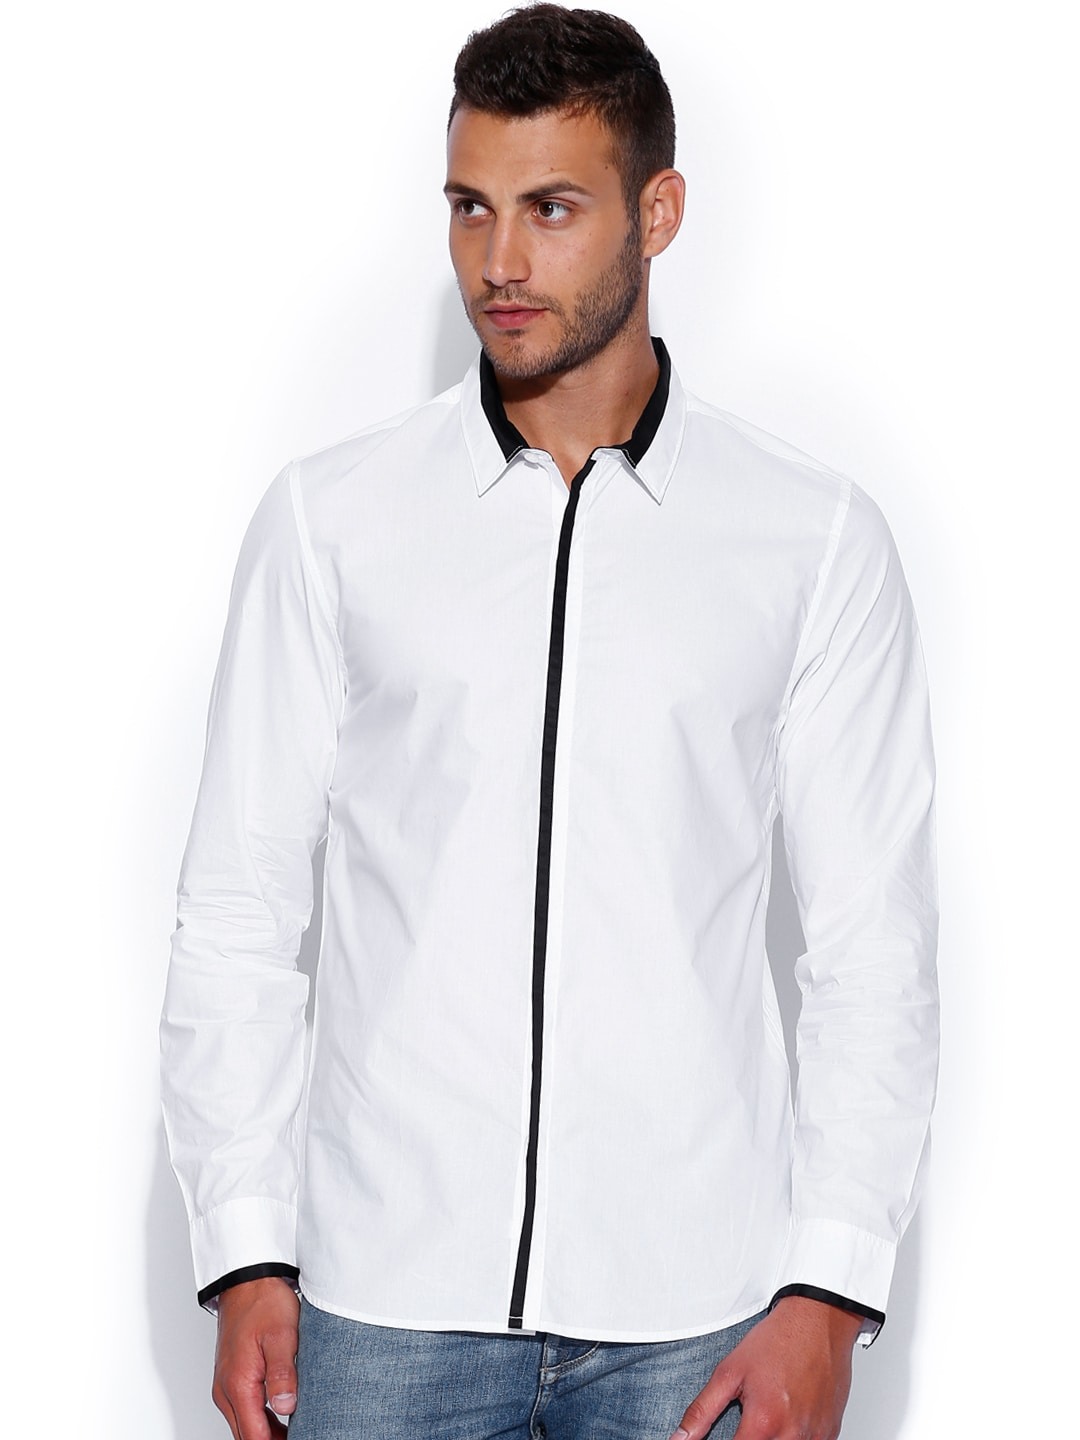 GUESS White Slim Casual Shirt